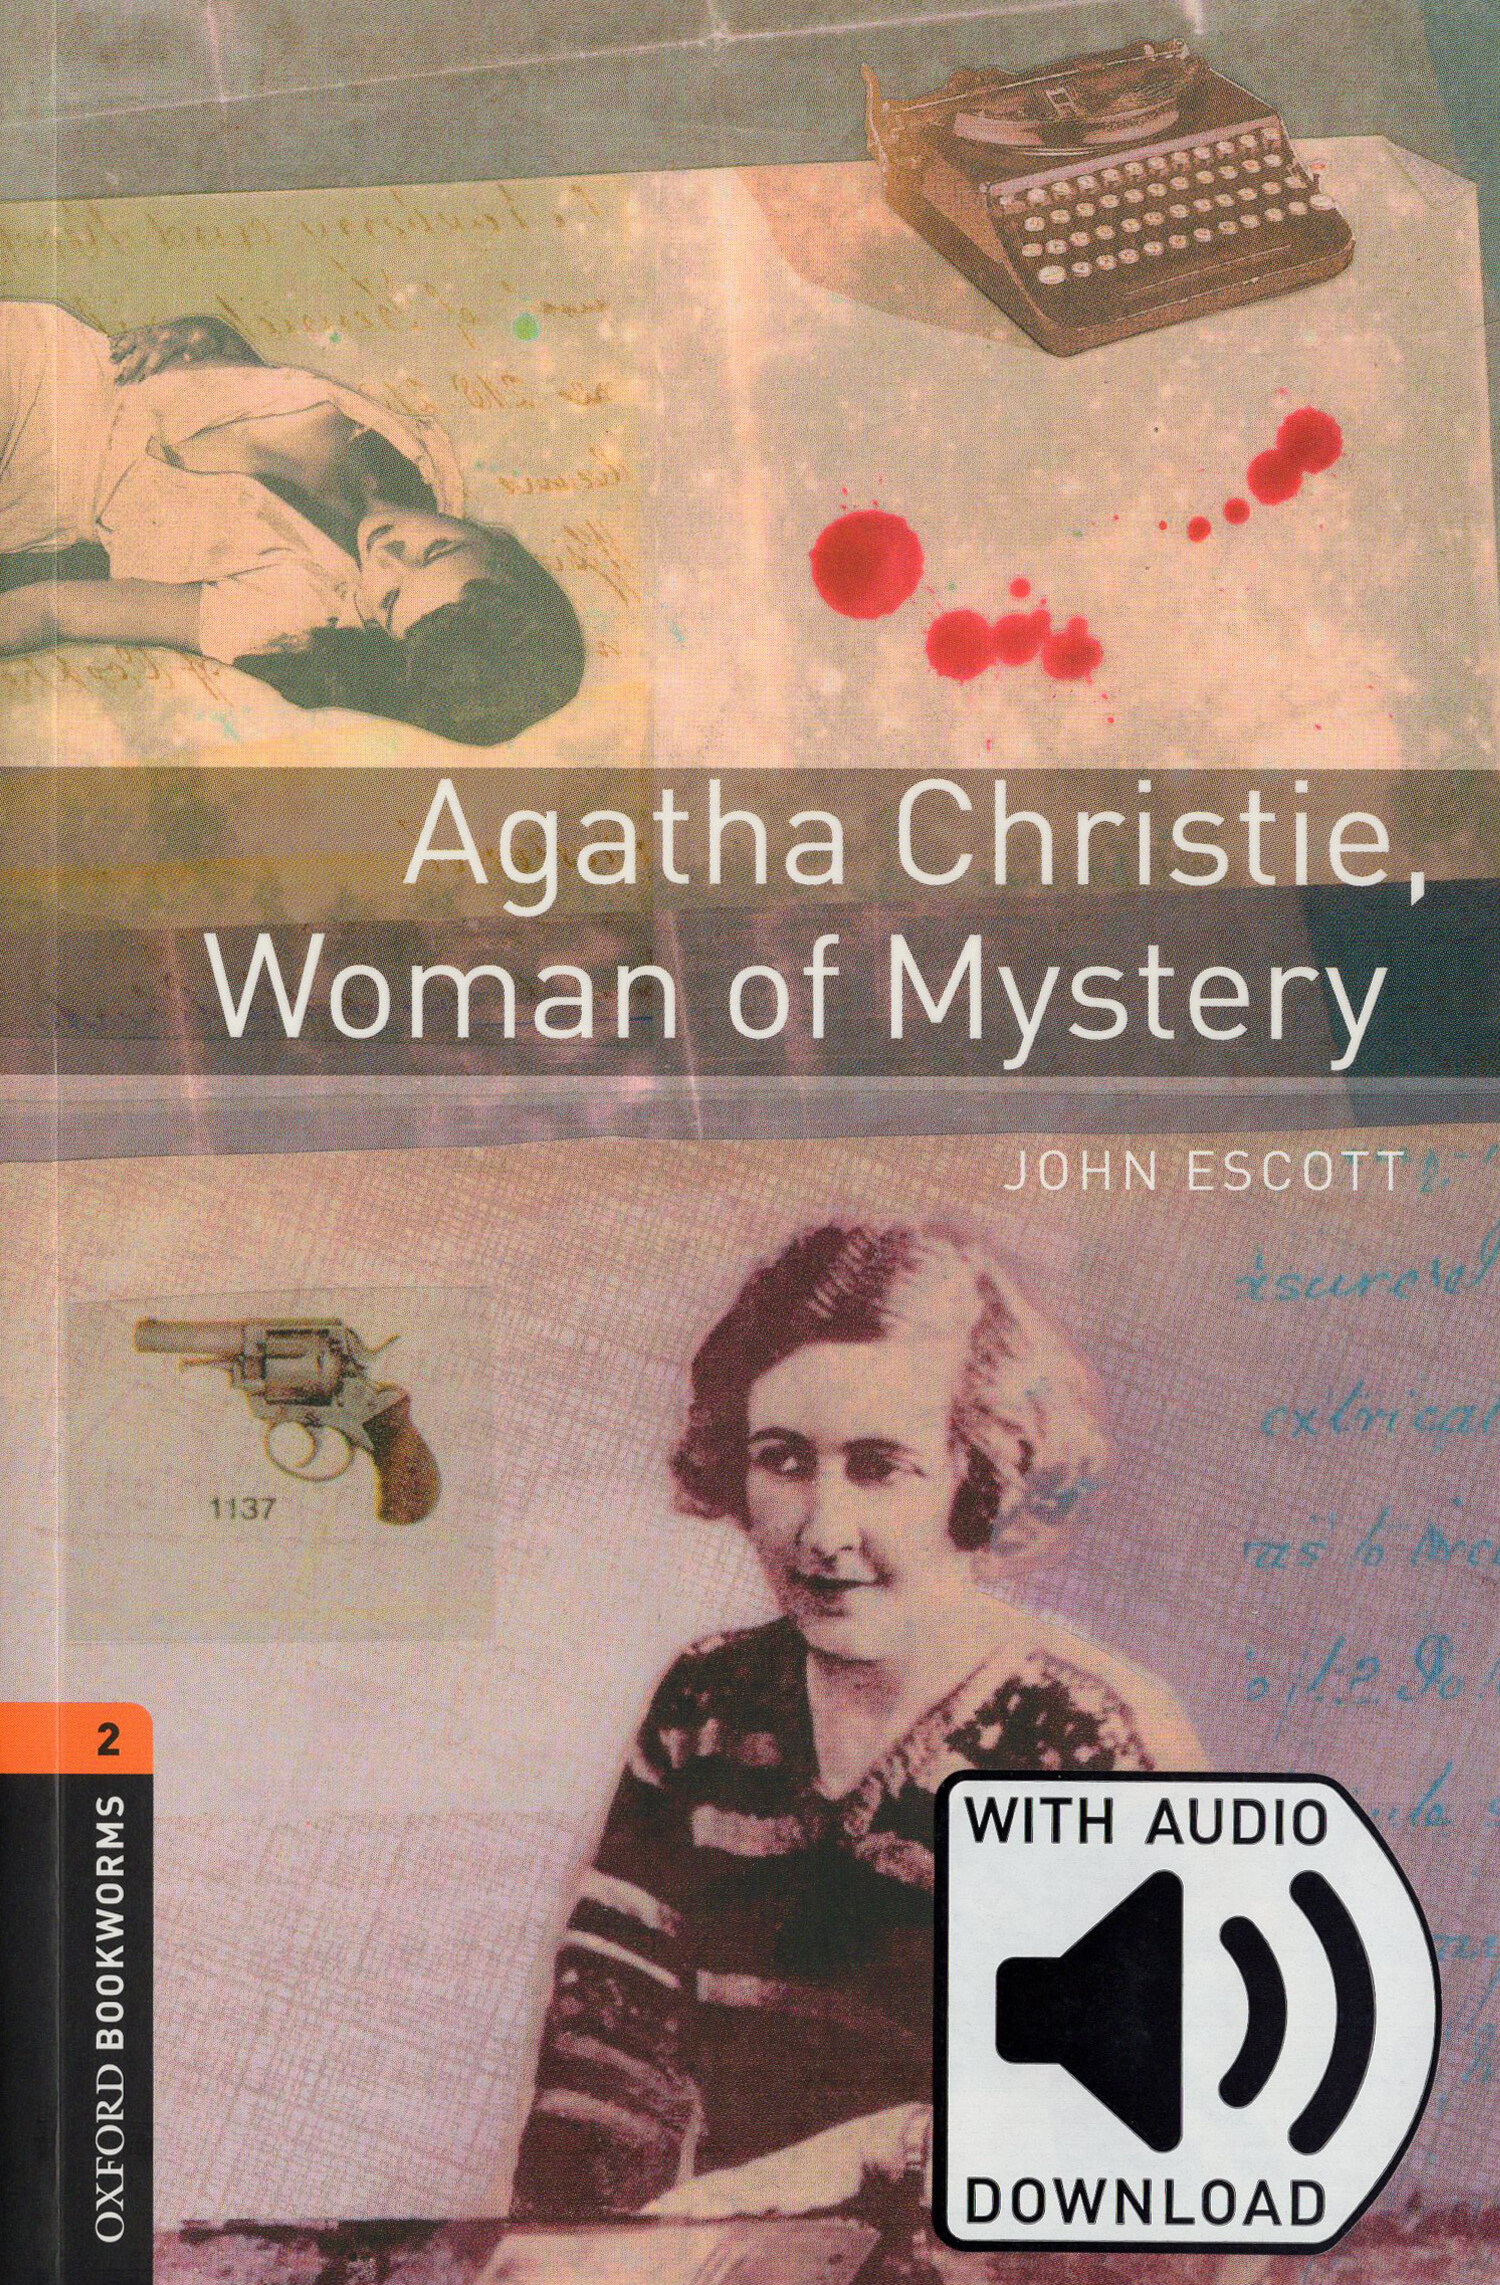 Oxford Bookworms Library 2 : Agatha Christie, Woman of Mystery (Paperback + MP3)